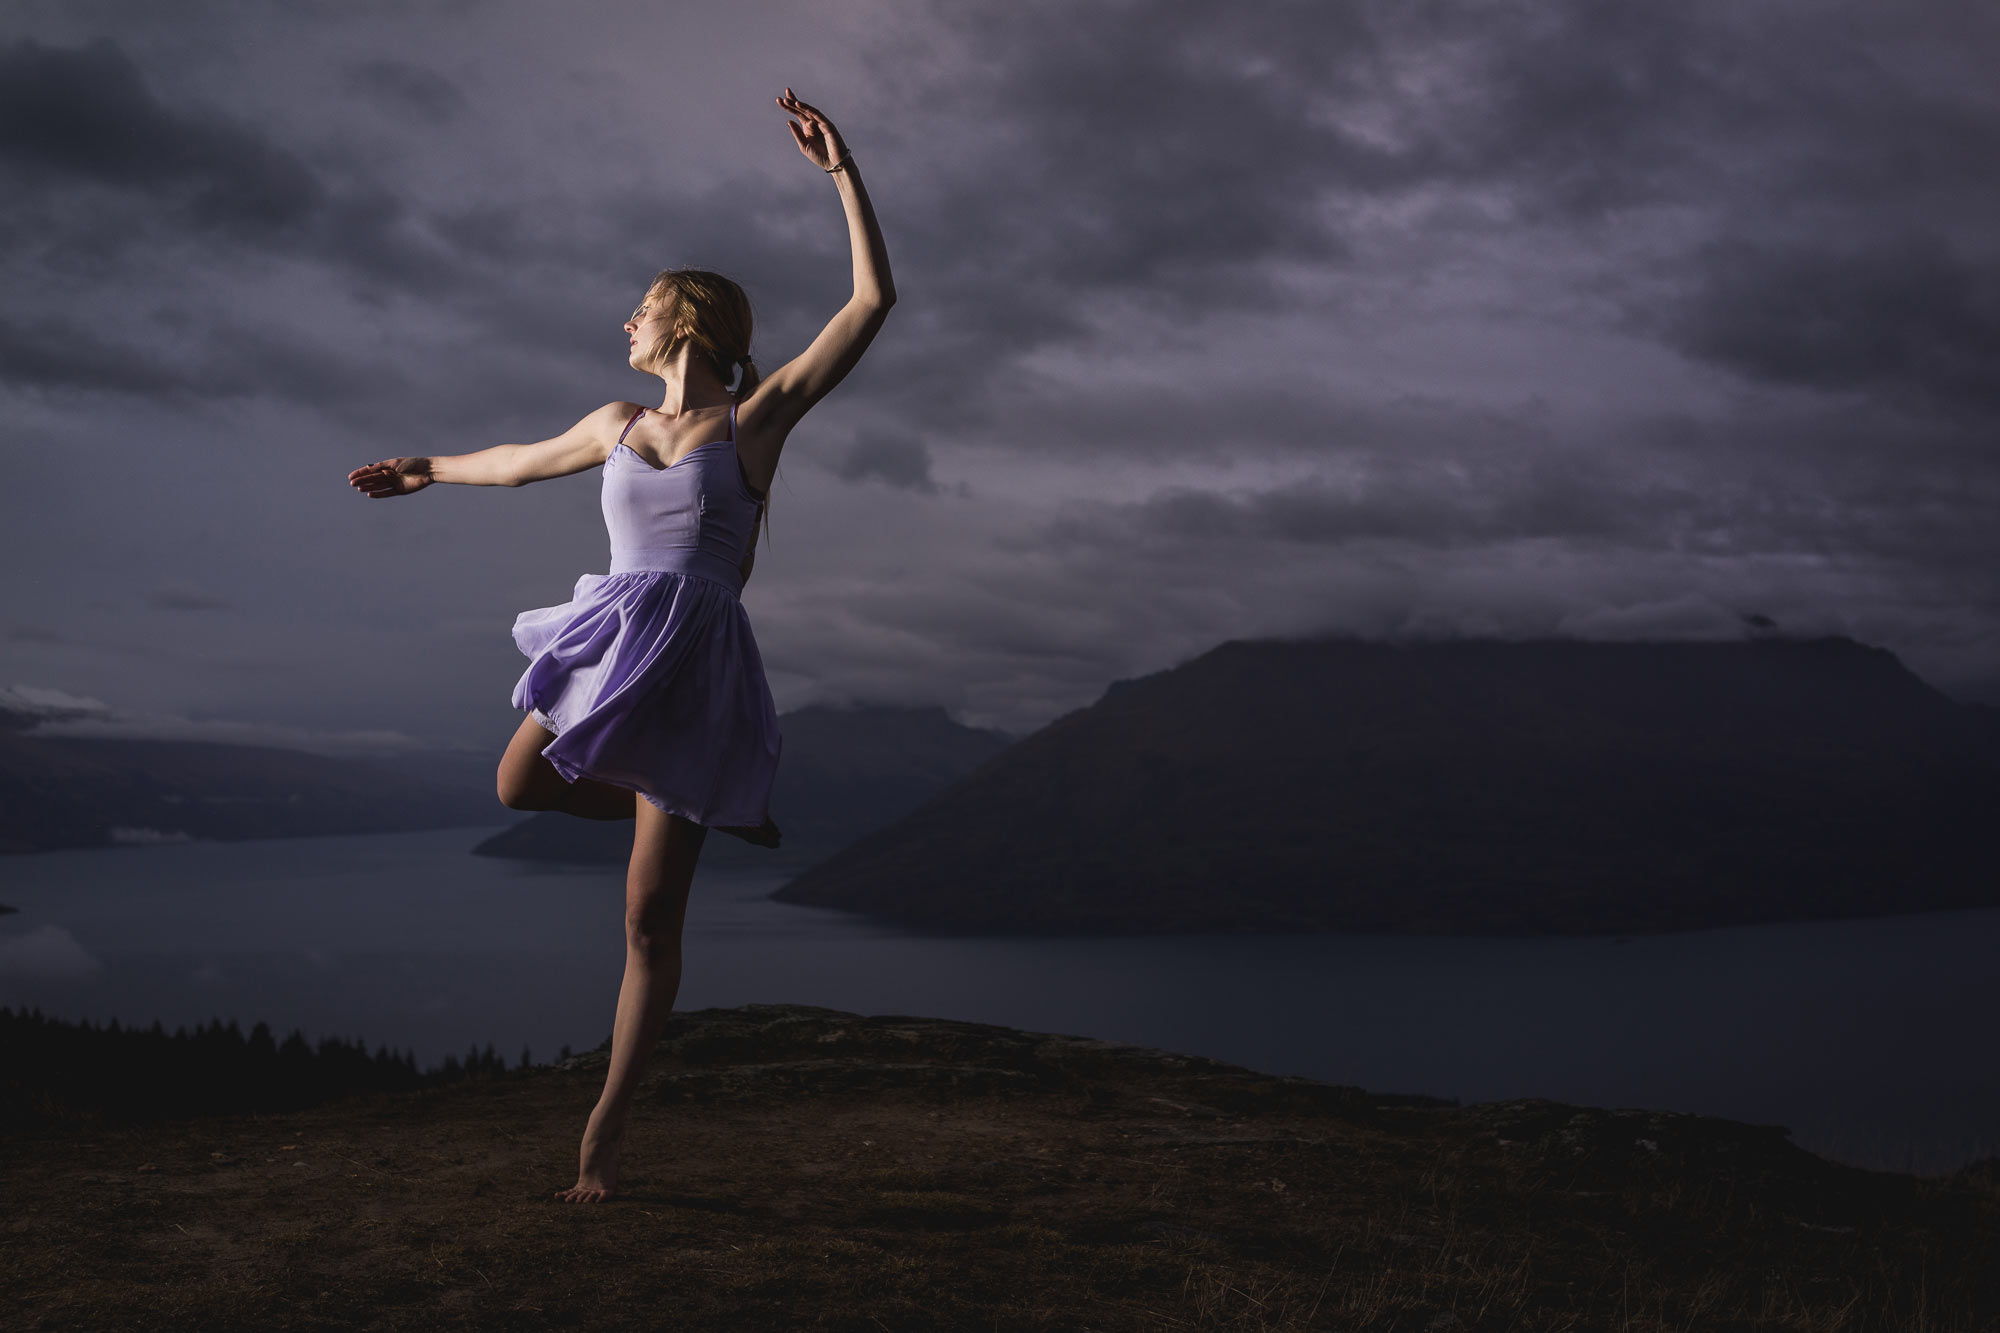 Ballet dancer dancing in a storm ontop of the mountains in Queenstown